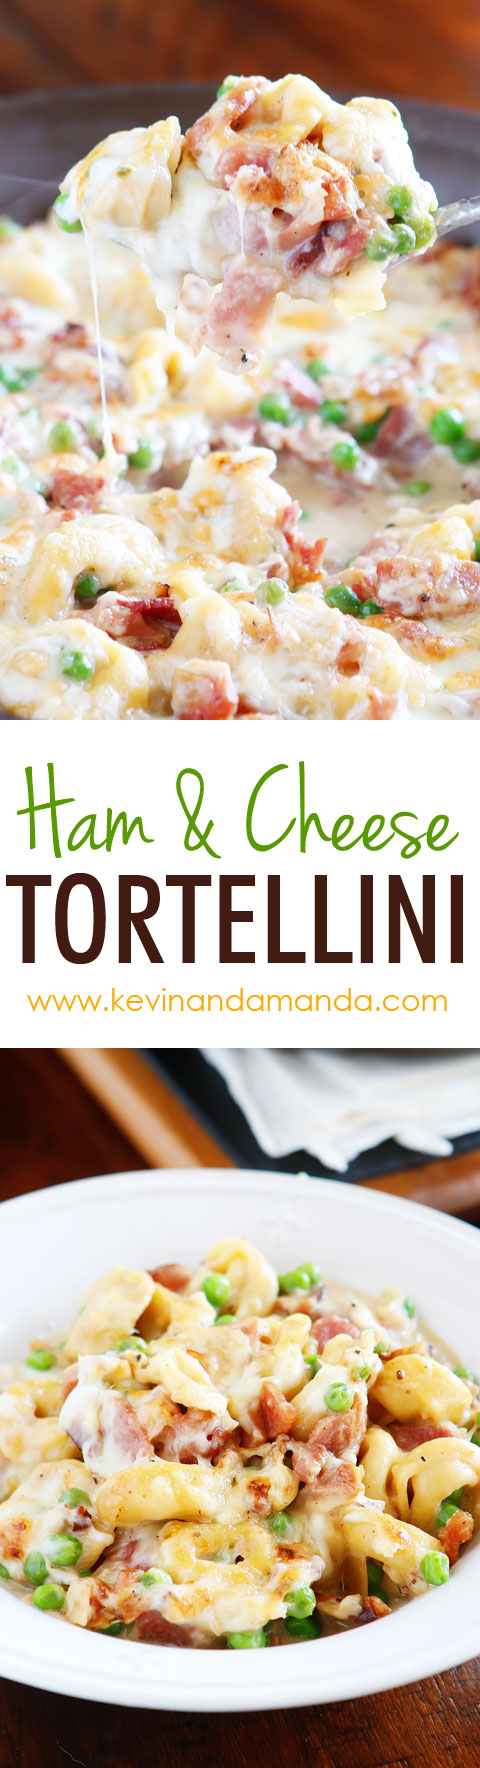 Ham and Cheese Tortellini with Garlic Butter Sauce Recipe